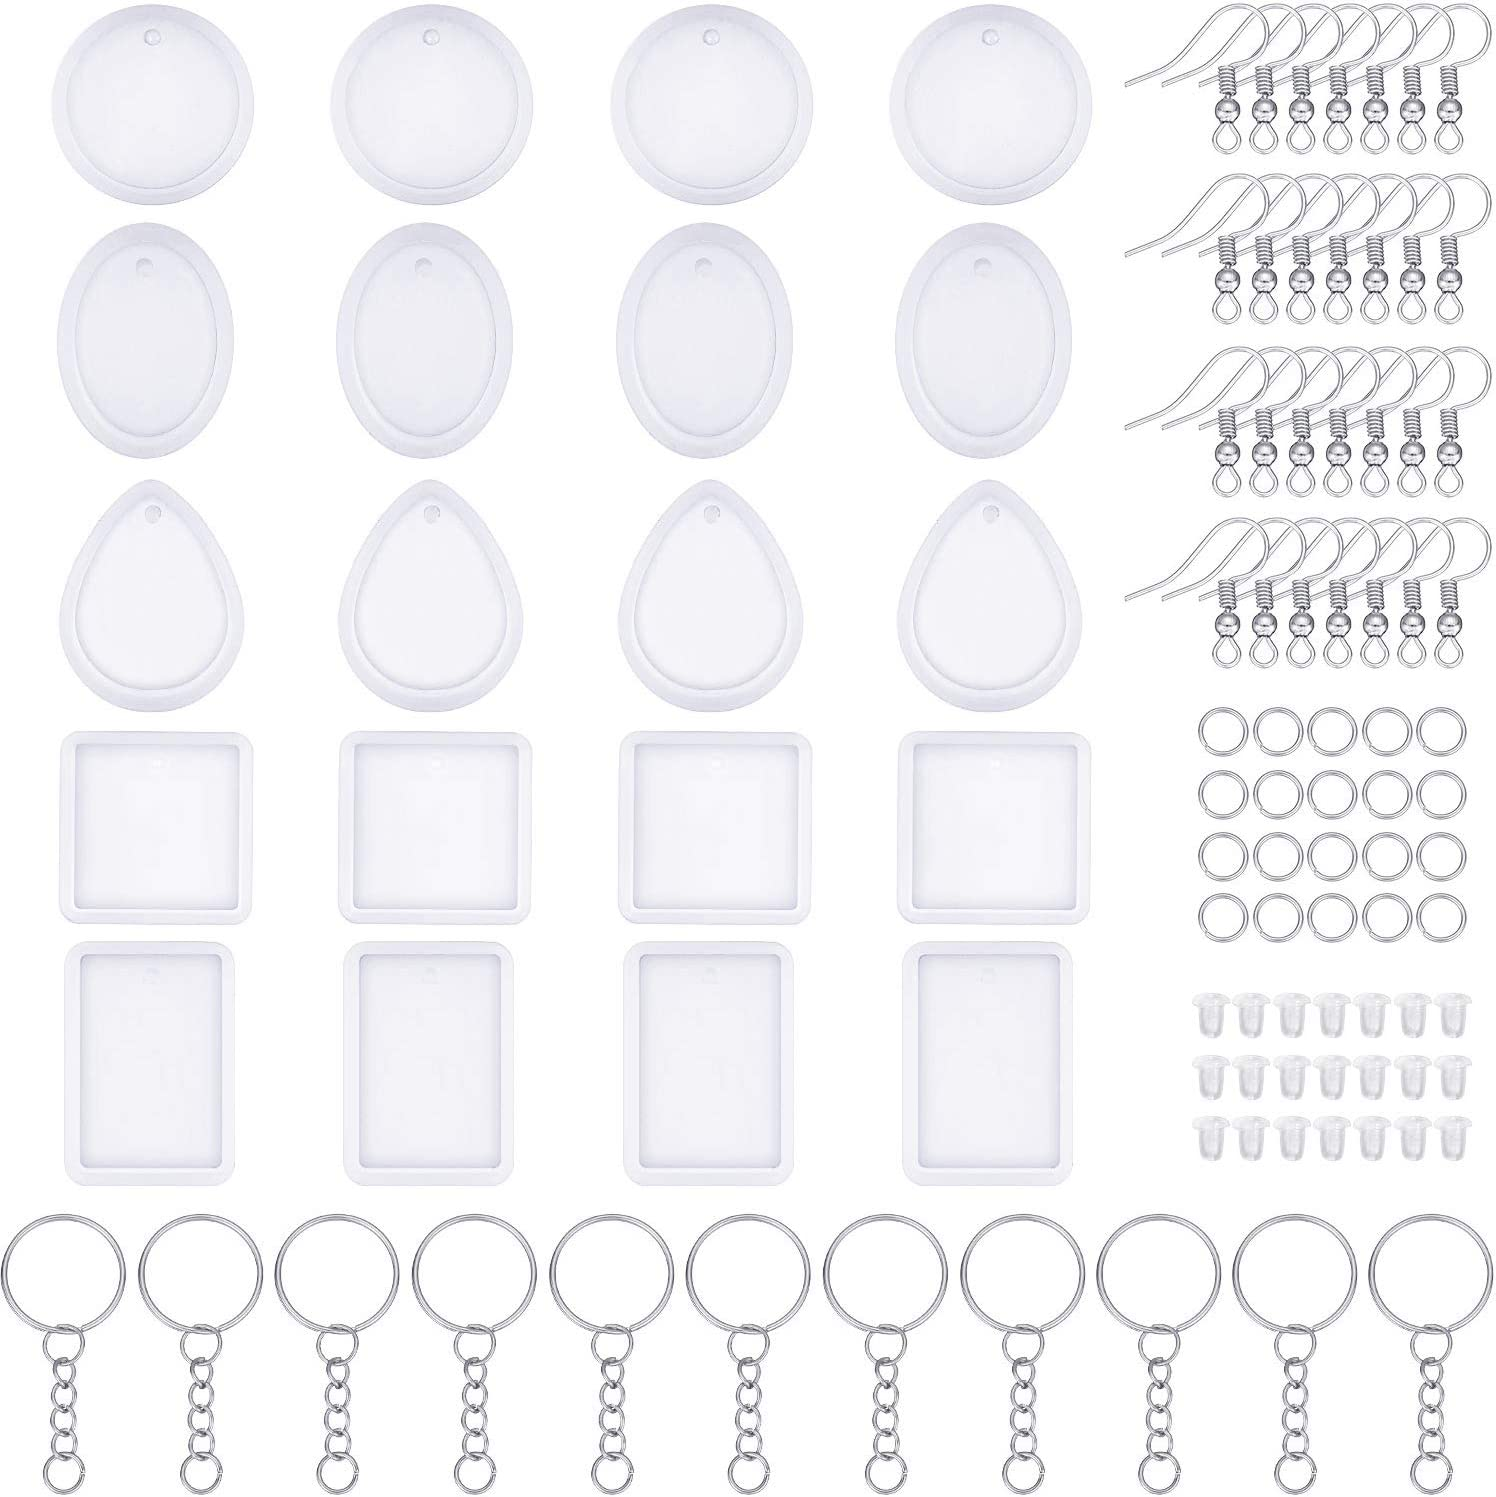 Pendant Mold Silicone Mold Resin Silicone Mould Jewelry Making Epoxy Resin Molds Jewelry Earring Resin Mold DJ/_M/_266